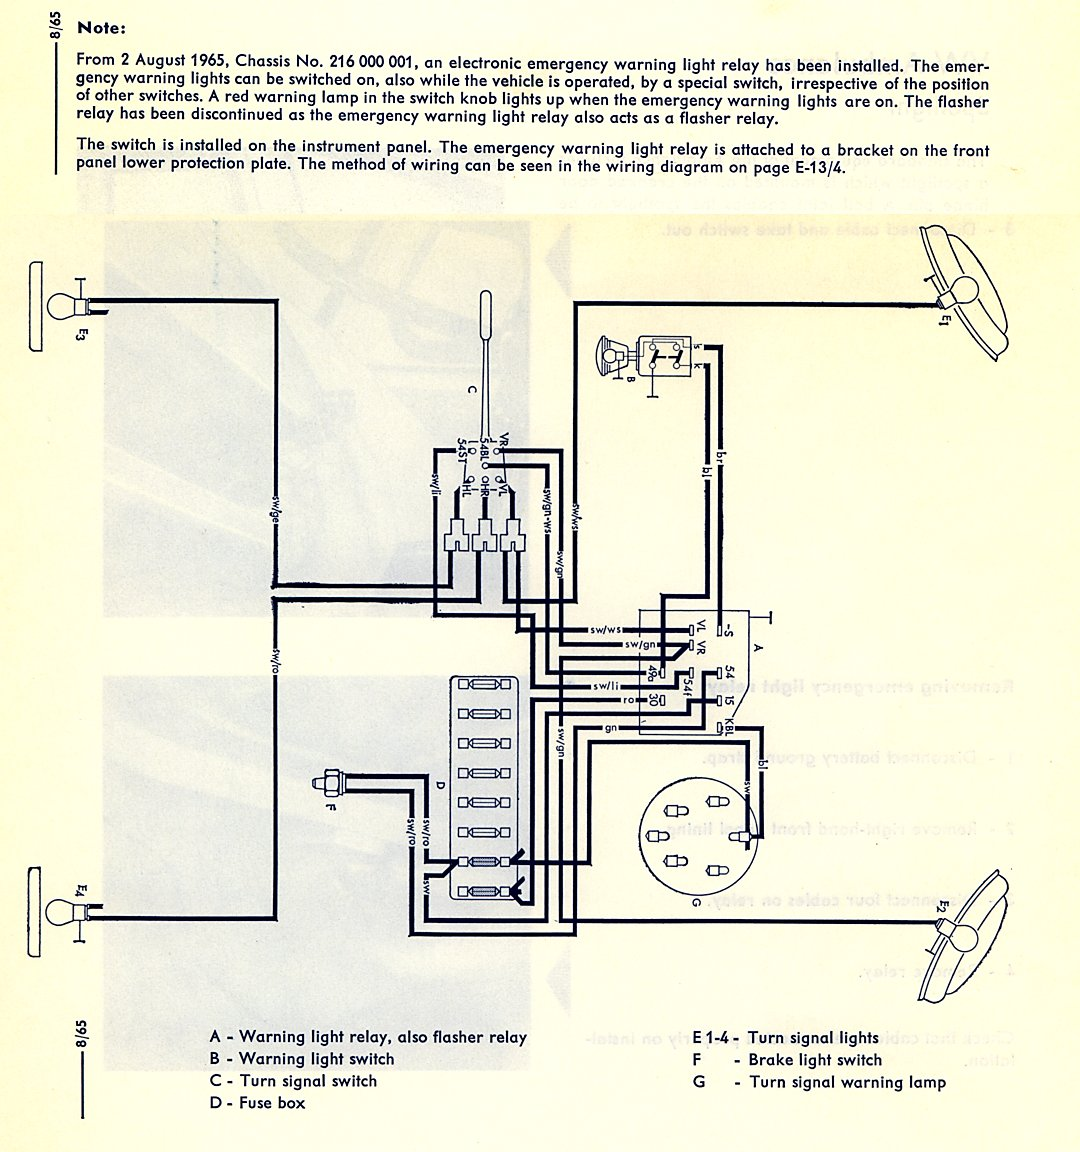 Type 2 Wiring Diagrams Mercedes Ignition Switch Plug Diagram 1975 To 1995 Benz